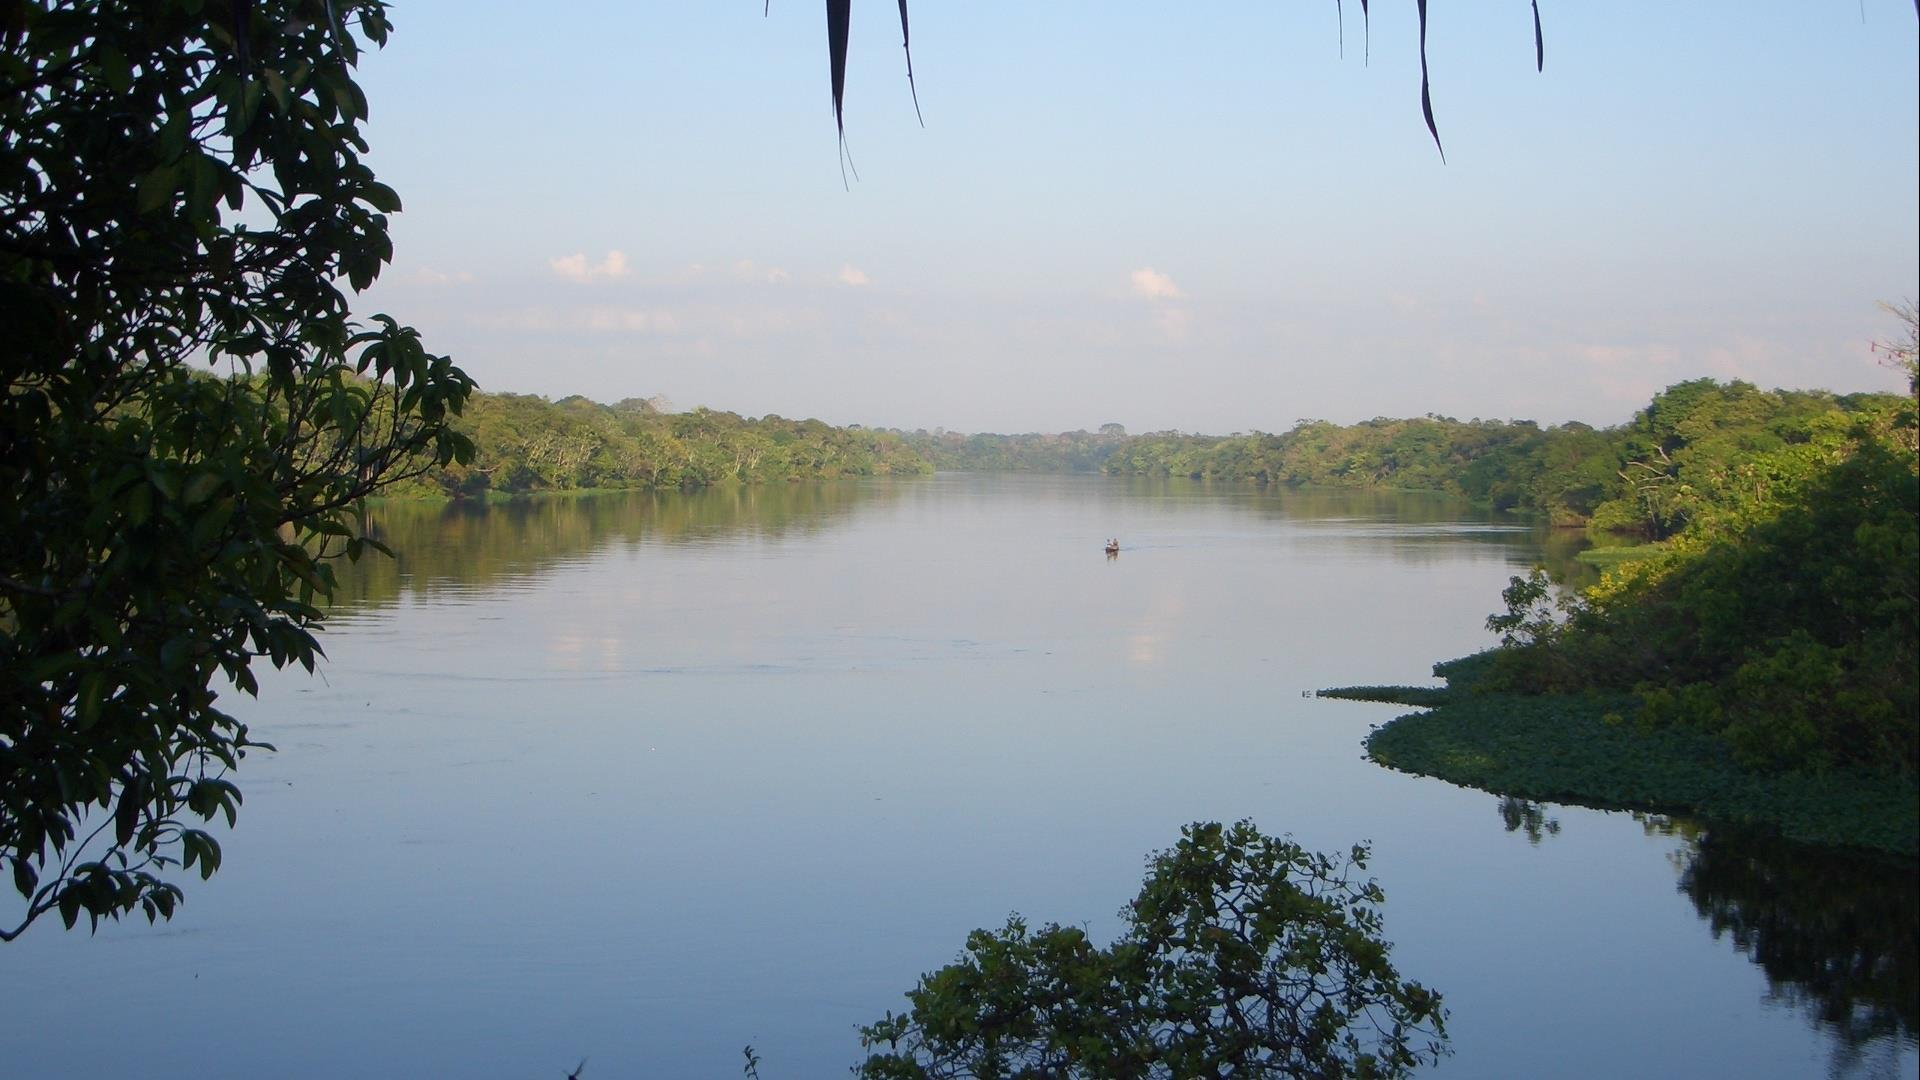 Brazil Amazon Juma Lodge Travel Packages from 2 to 6 nights: View over the river by the end of the day